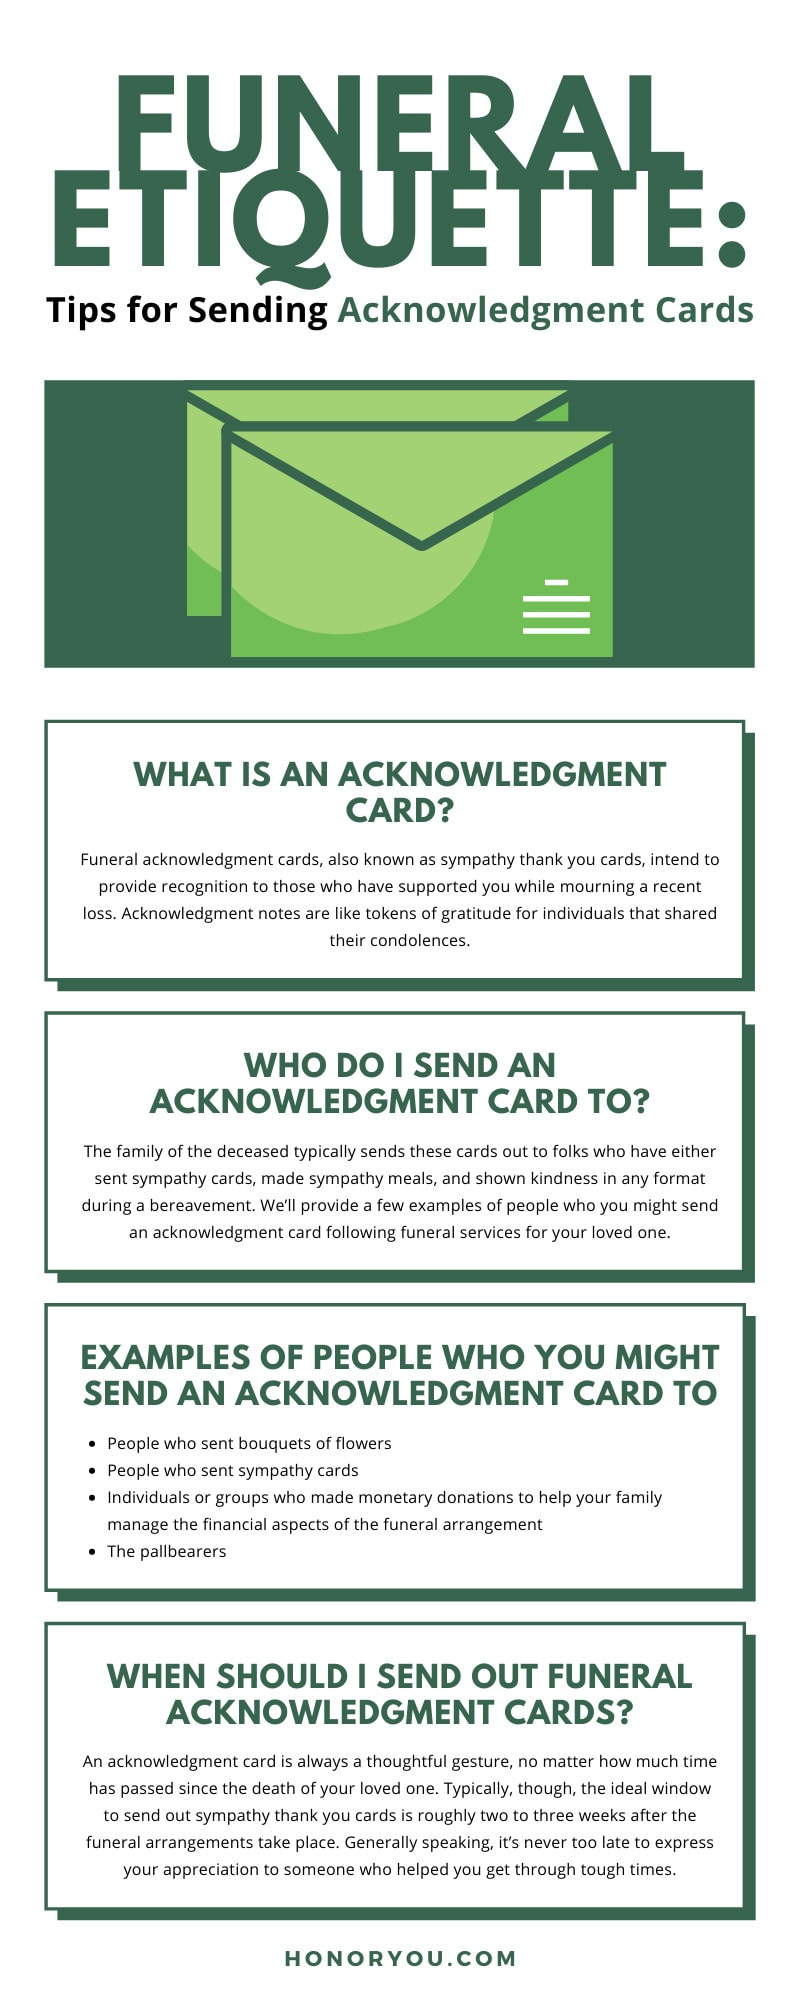 Funeral Etiquette: Tips for Sending Acknowledgment Cards